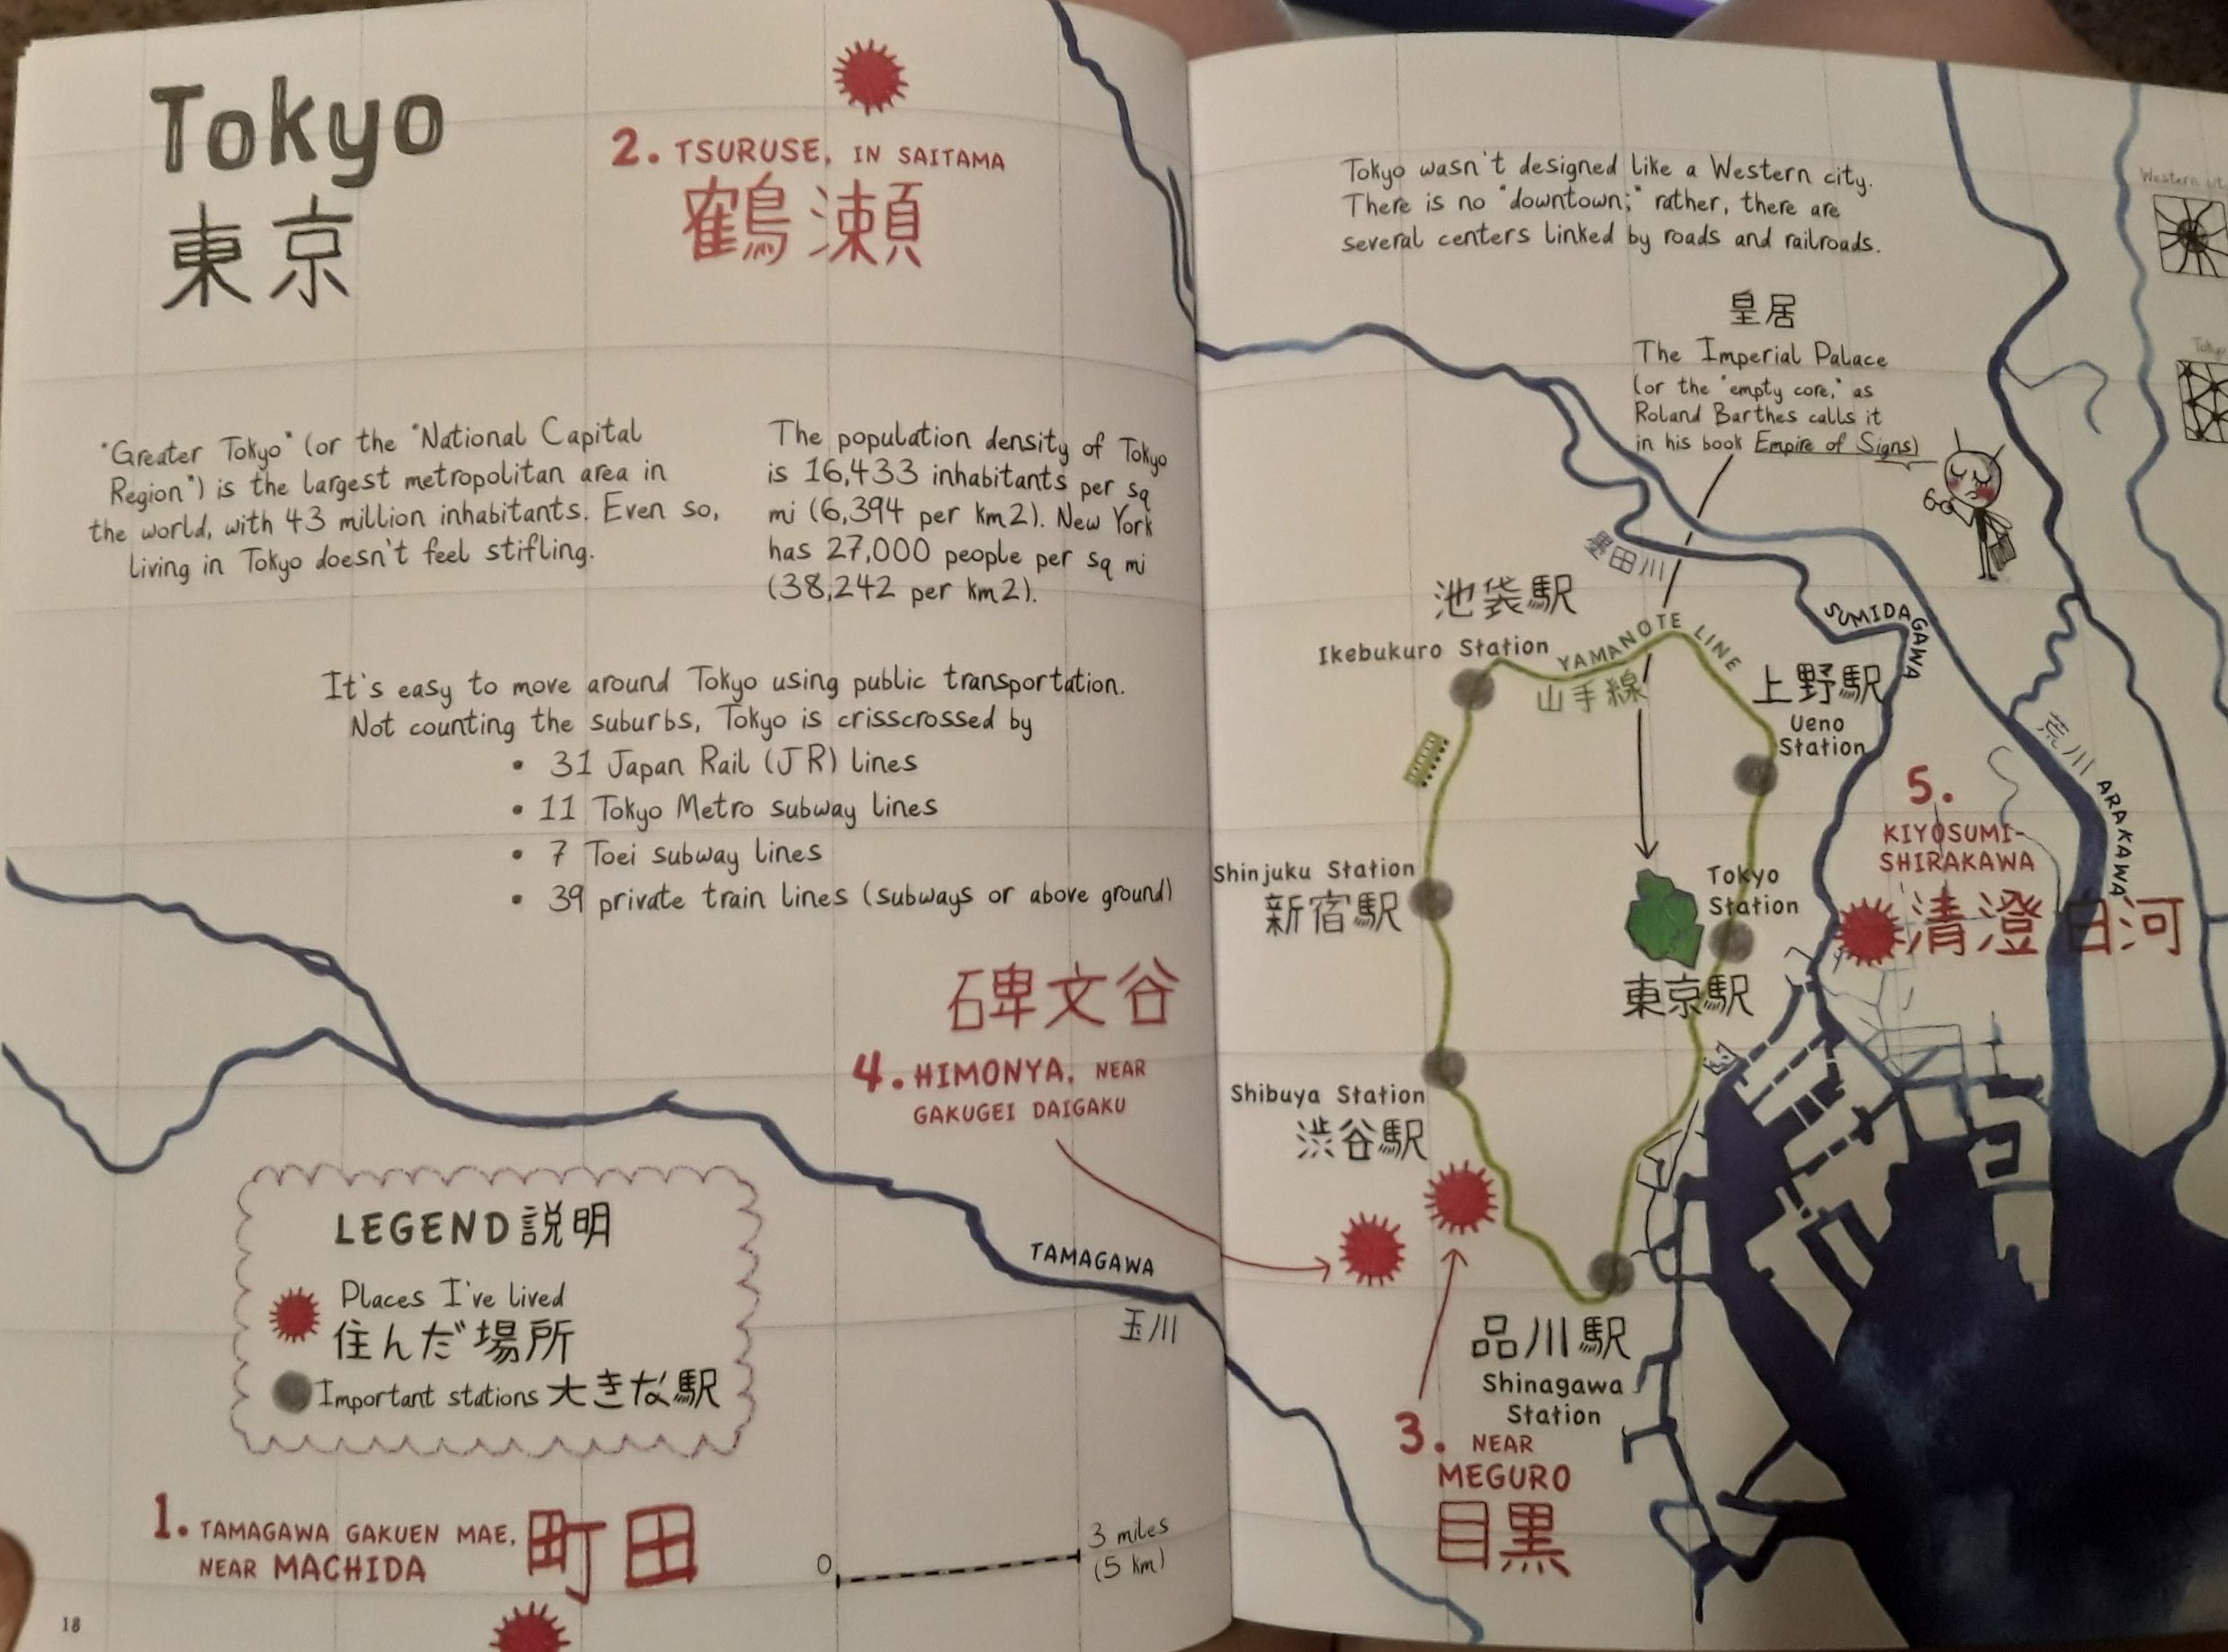 Map of Tokyo marking places the author has lived and major train routes